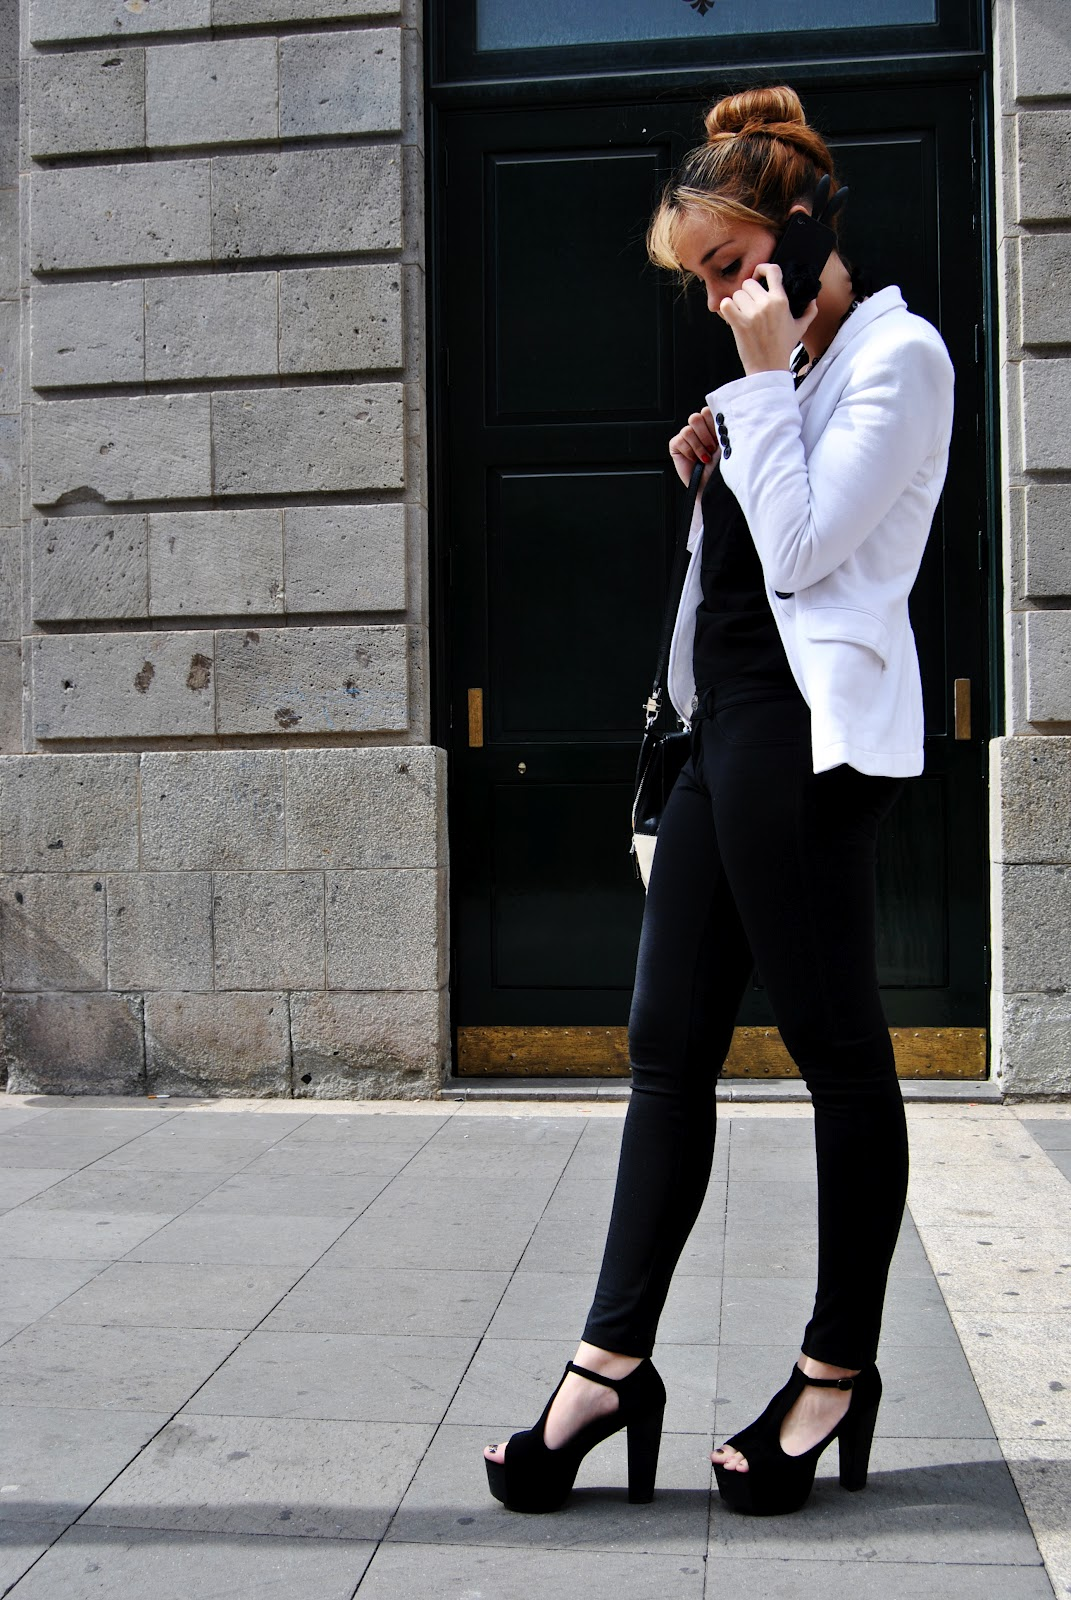 nery hdez, iphone case, leggins, white blazer, bussines look